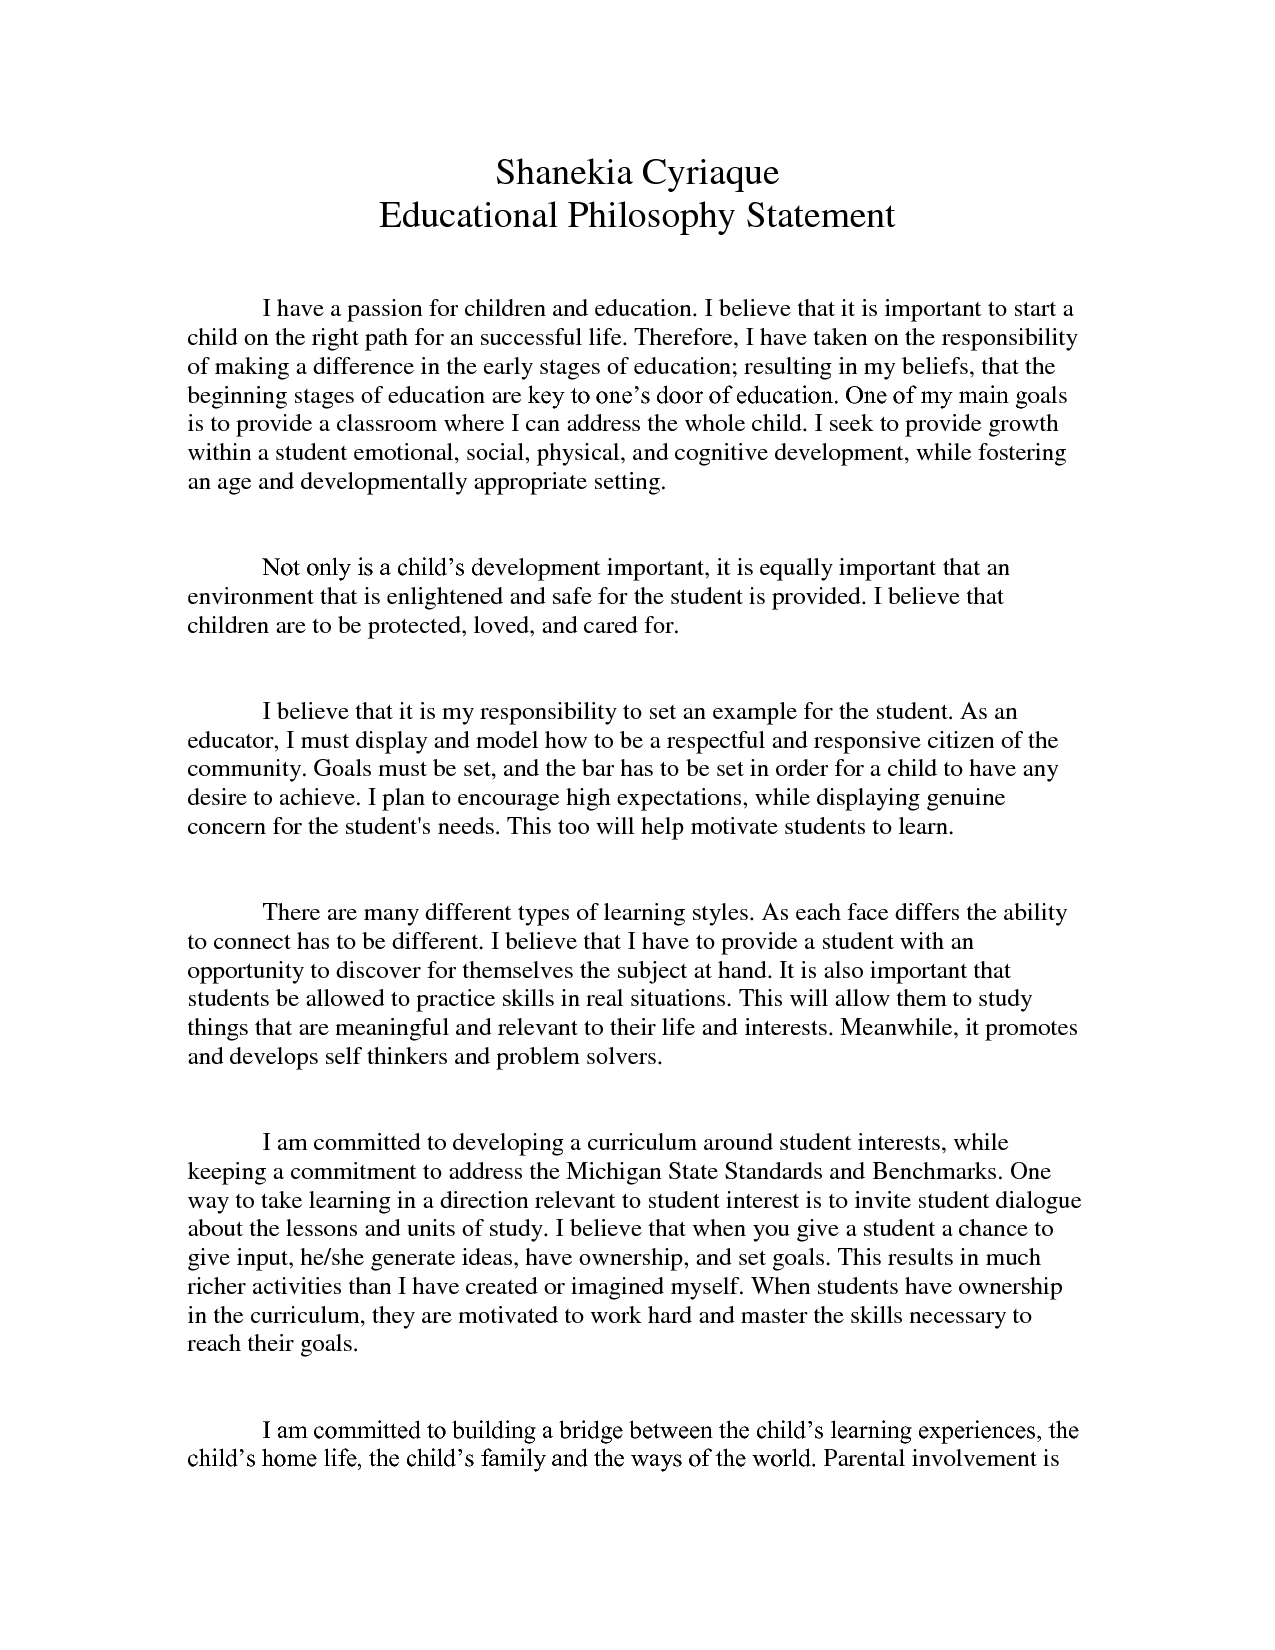 acirc educational philosophy statement samples cda acirc135151 educational philosophy statement samples